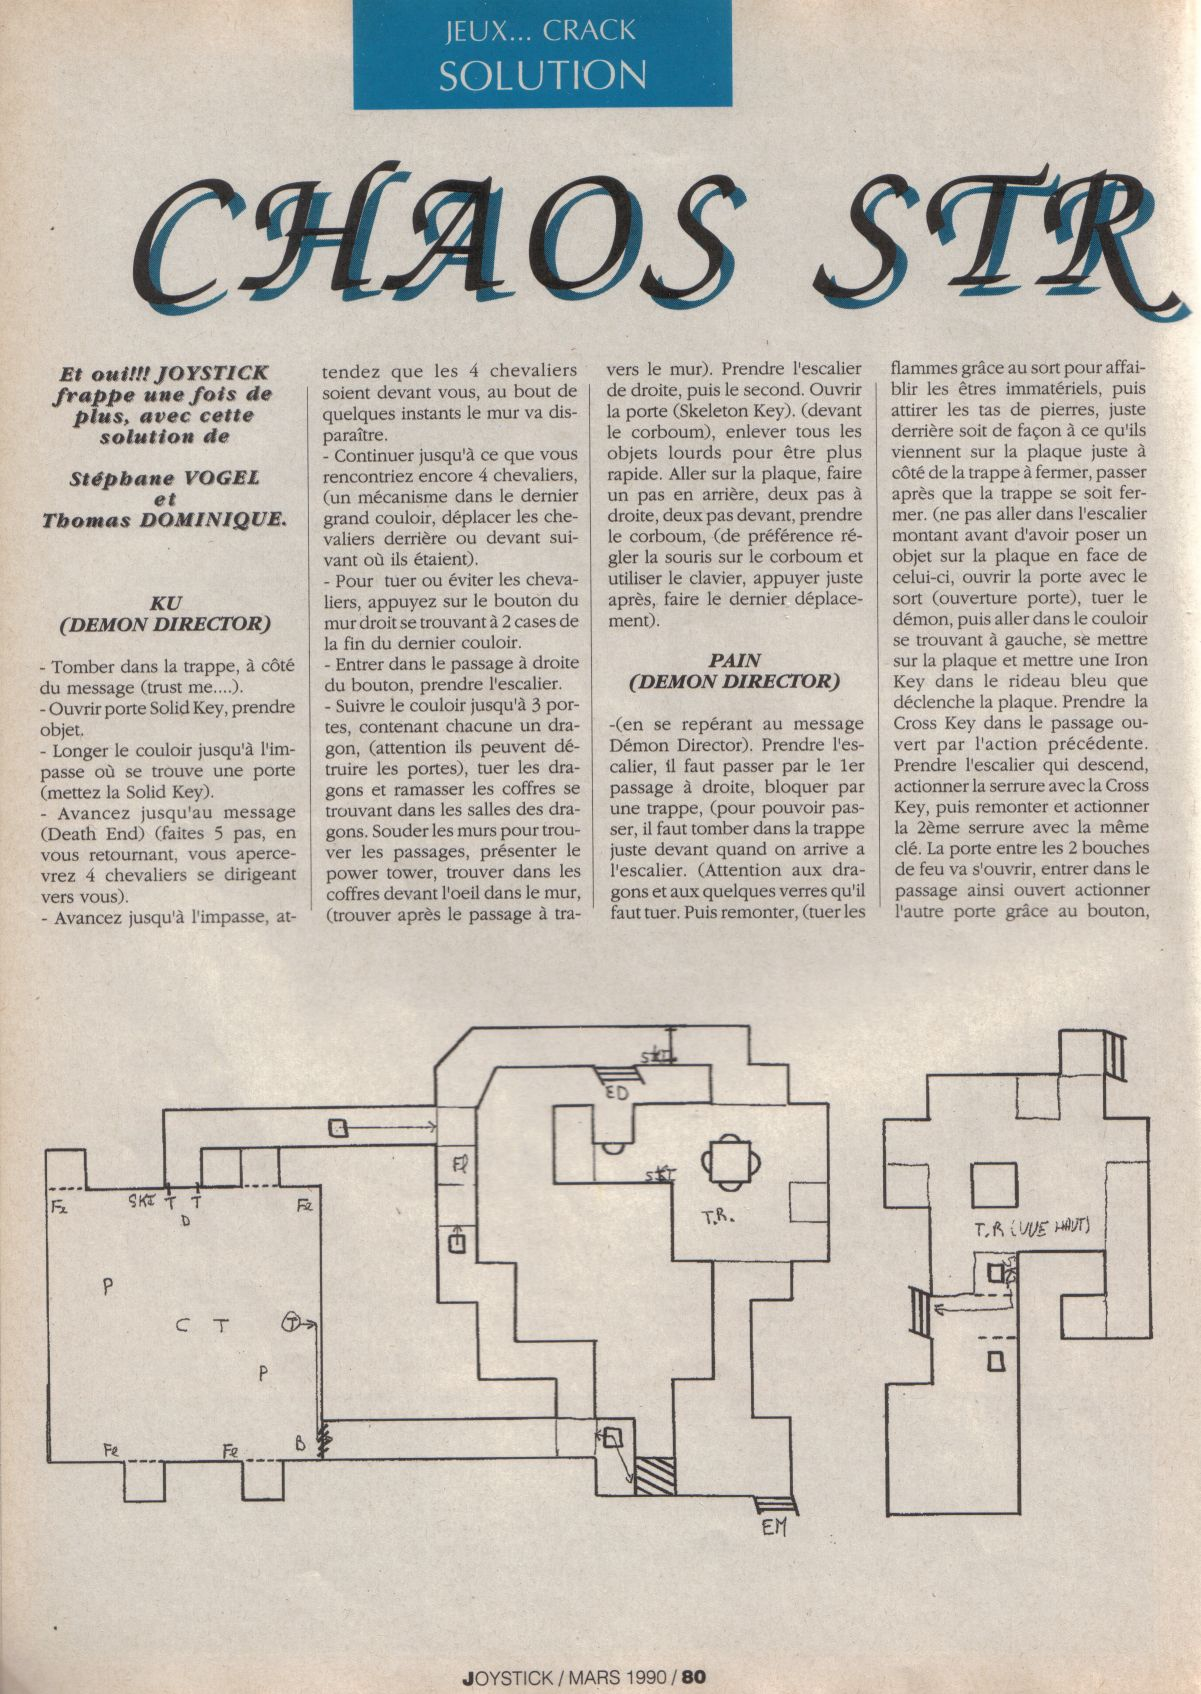 Chaos Strikes Back for Atari ST Guide published in French magazine &amp;#039;Joystick&amp;#039;, Issue #3, March 1990, Page 80